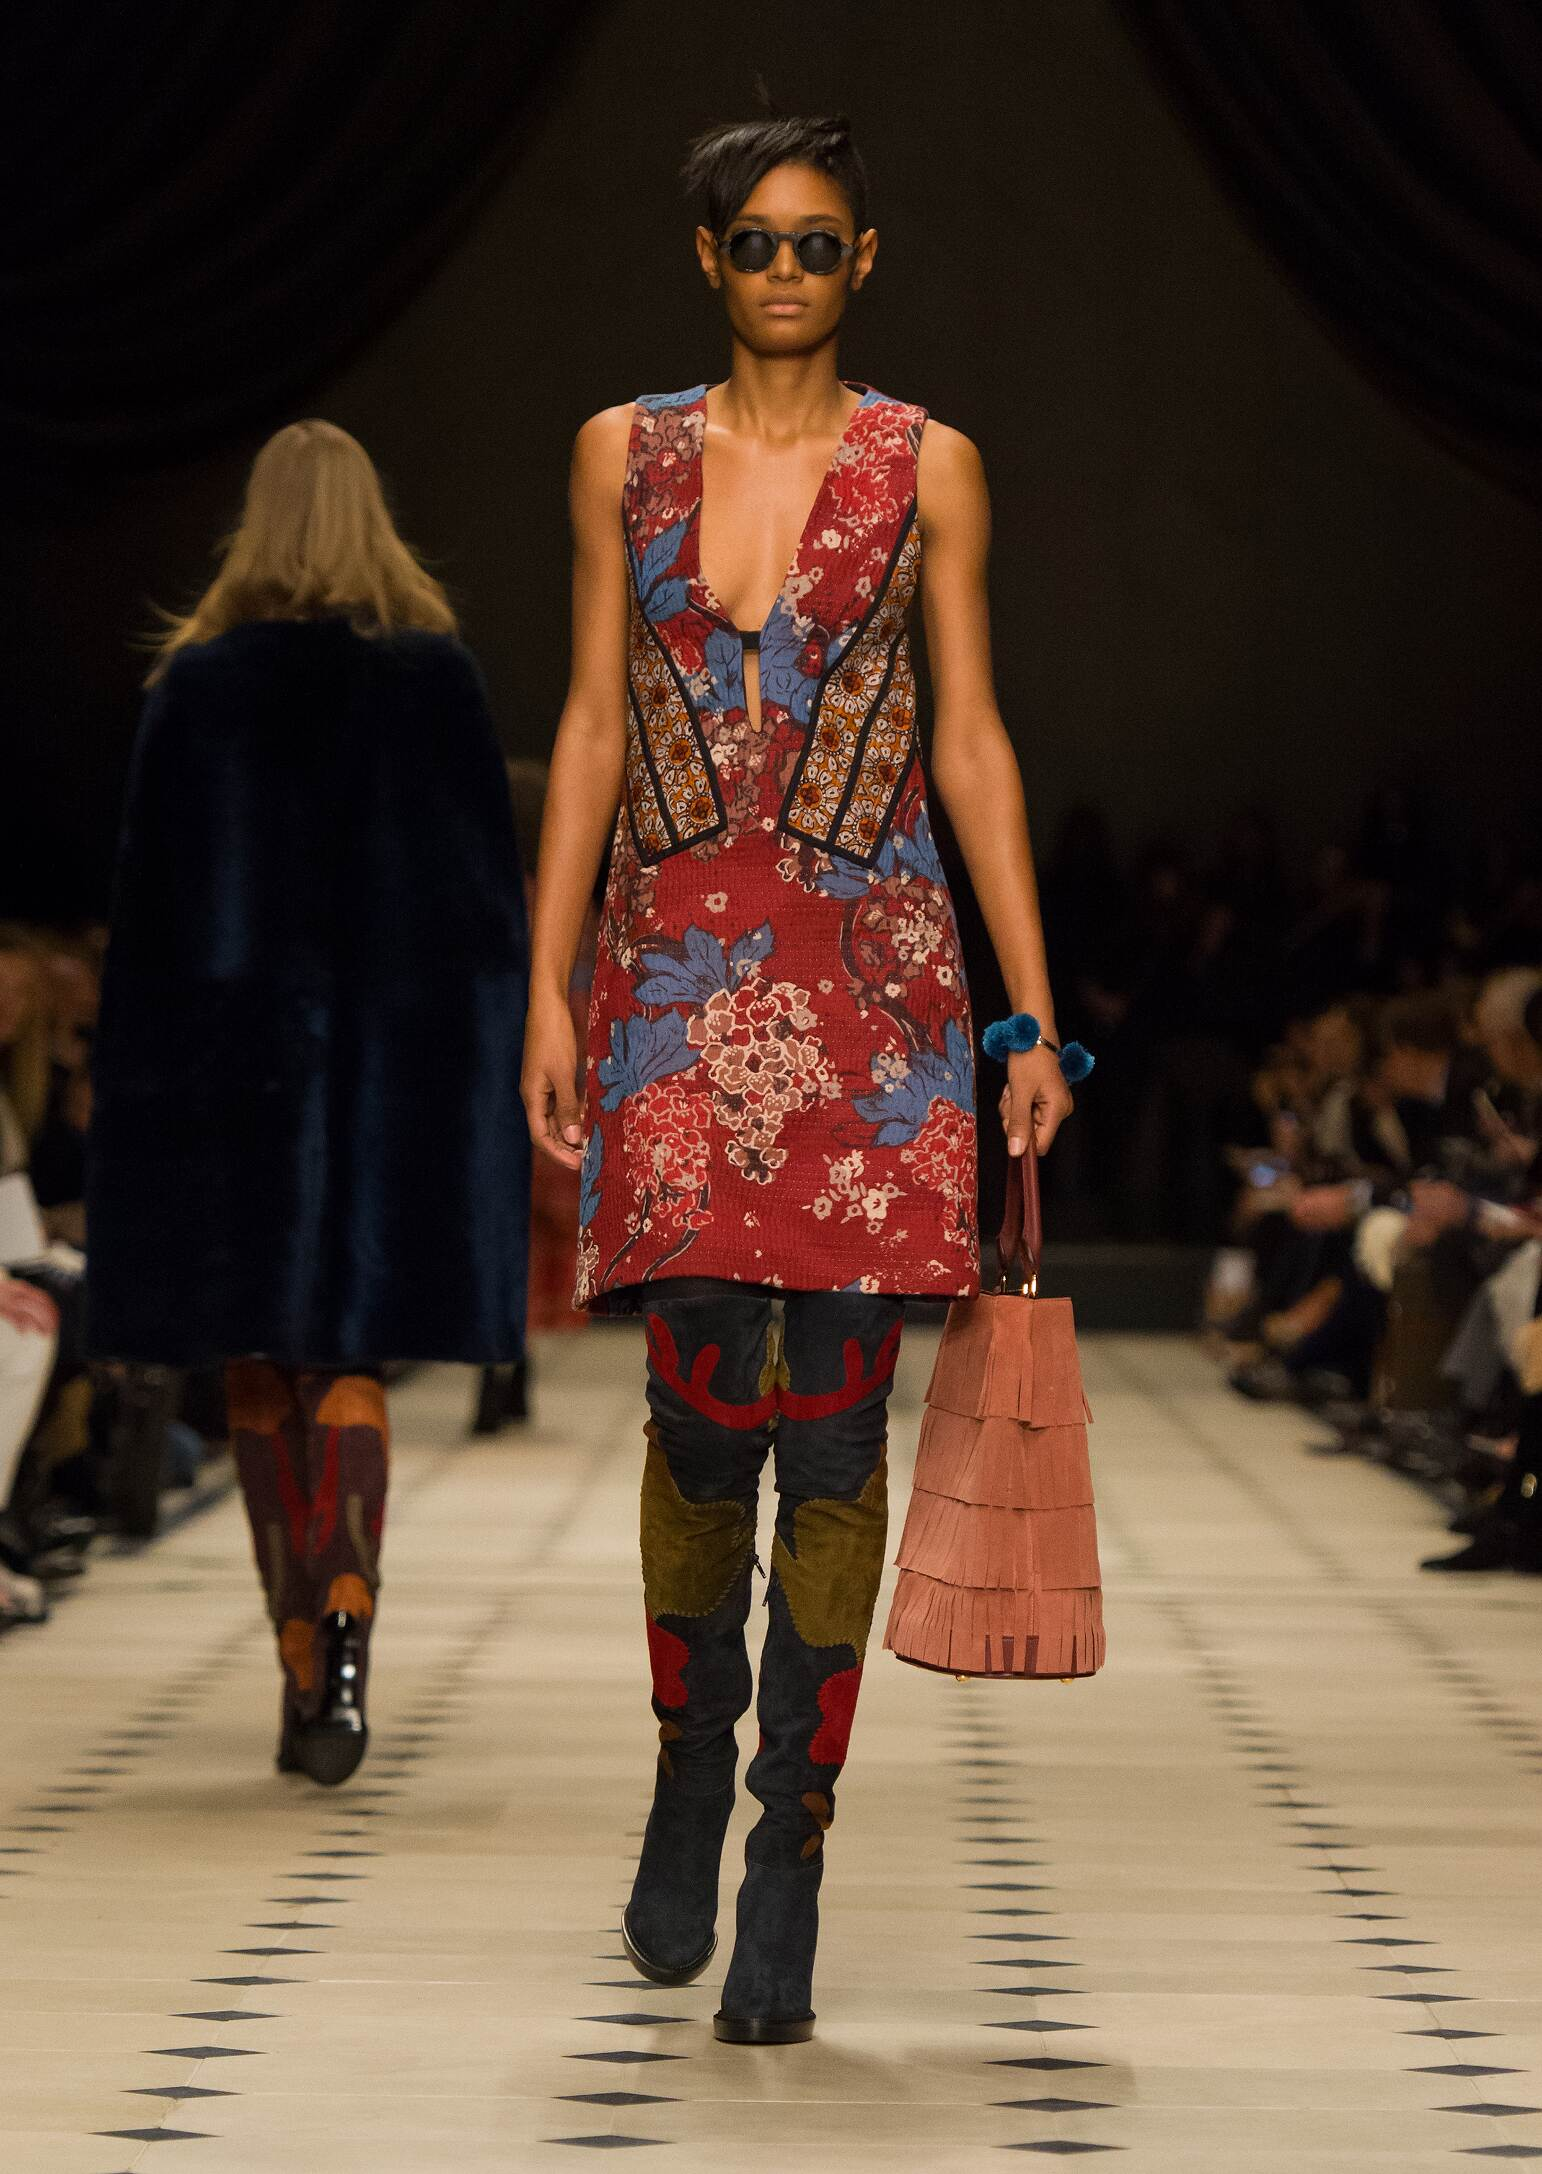 56159fdf4570 BURBERRY PRORSUM FALL WINTER 2015-16 WOMEN S COLLECTION